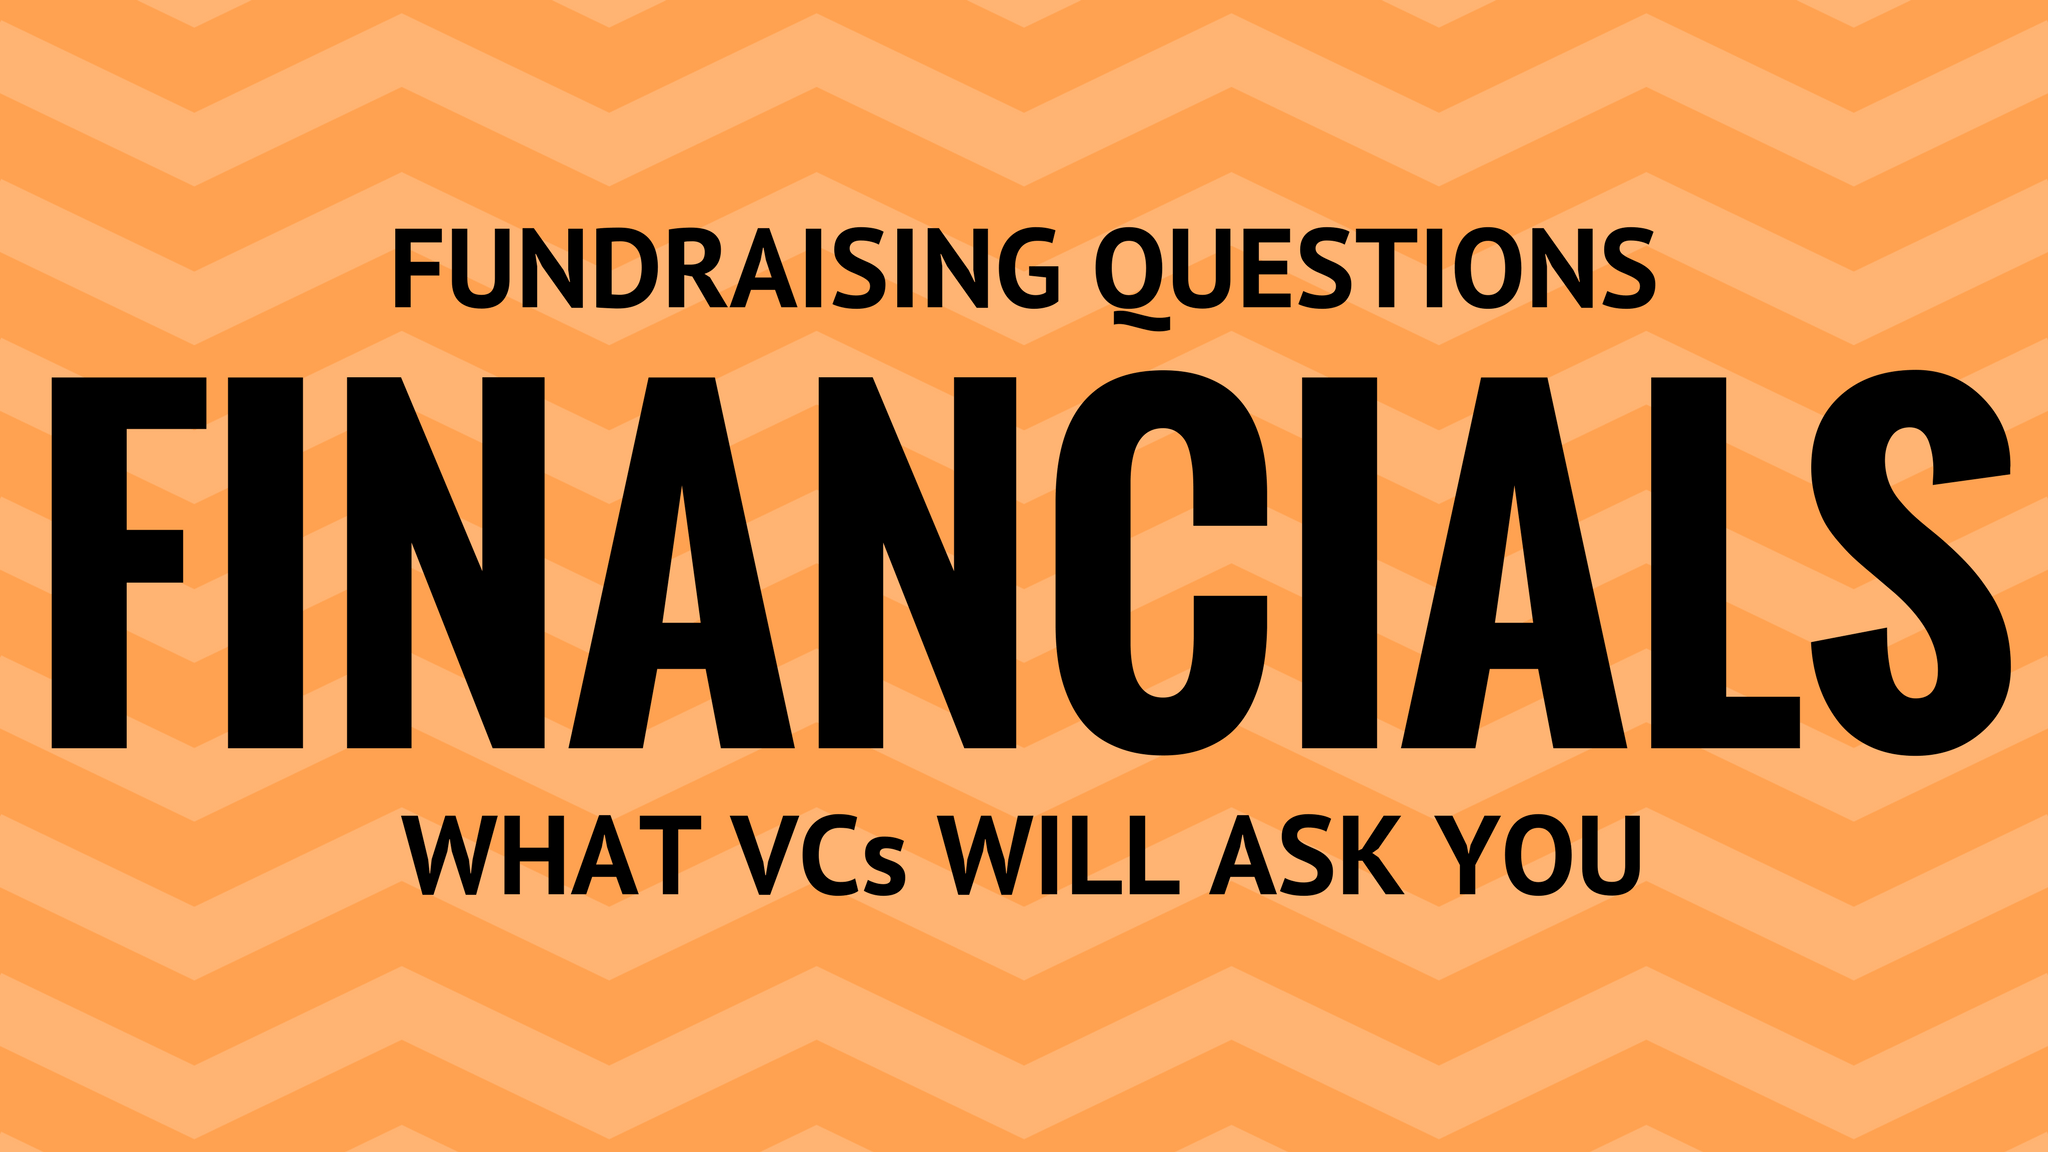 Venture capital startup interview questions: Fundraising financial